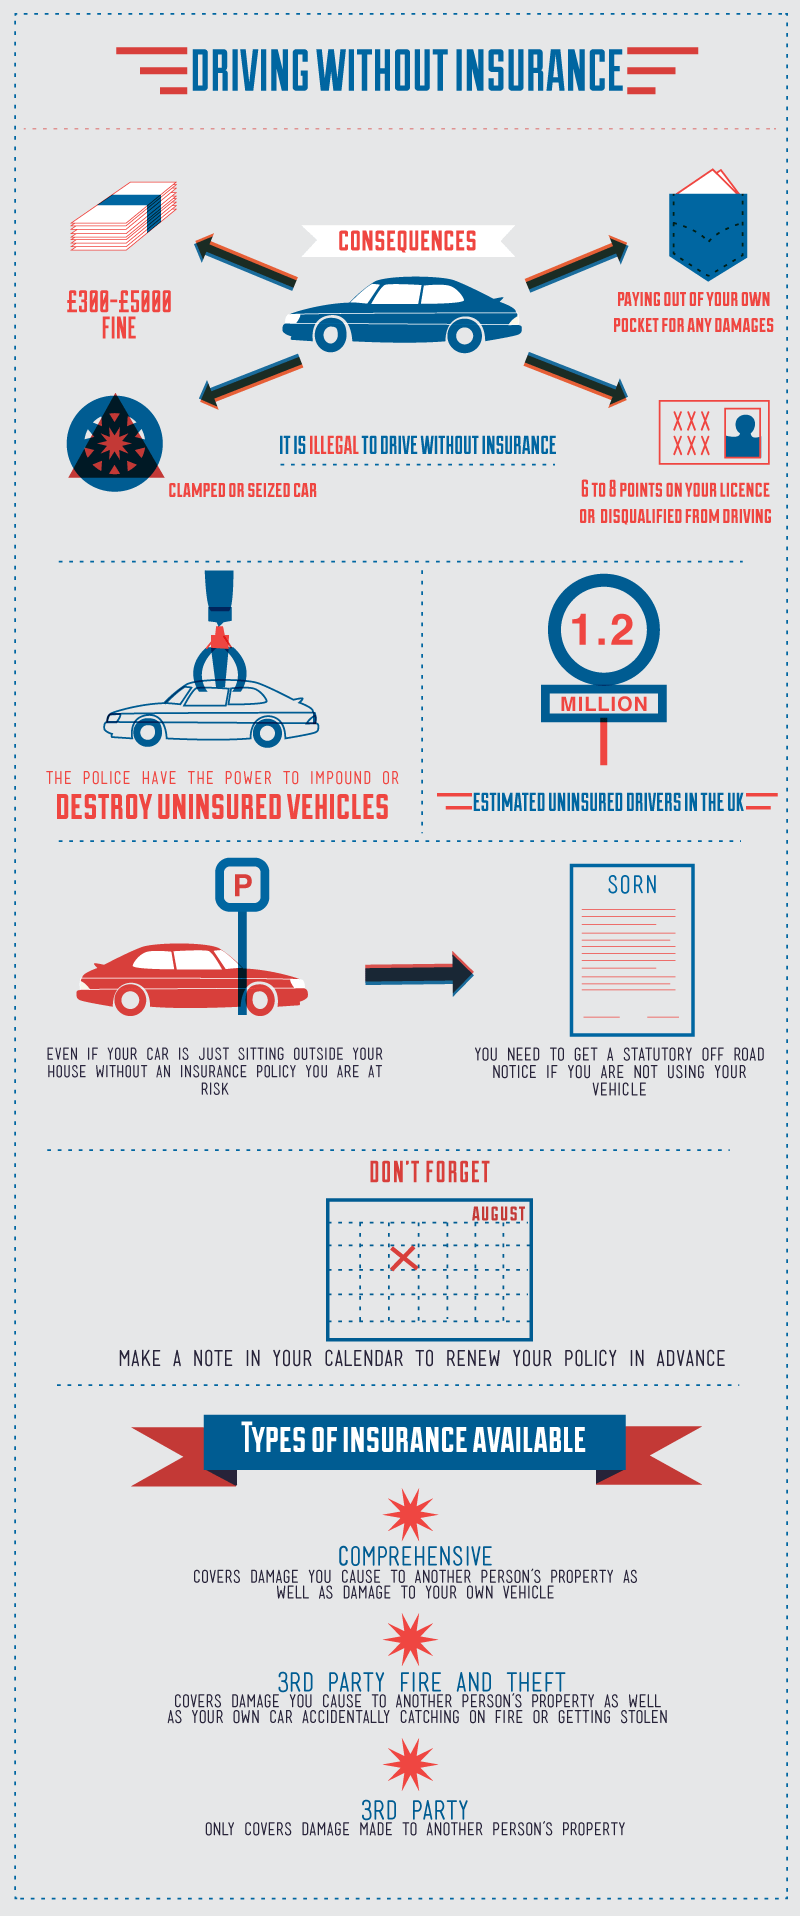 Driving without insurance: the facts.